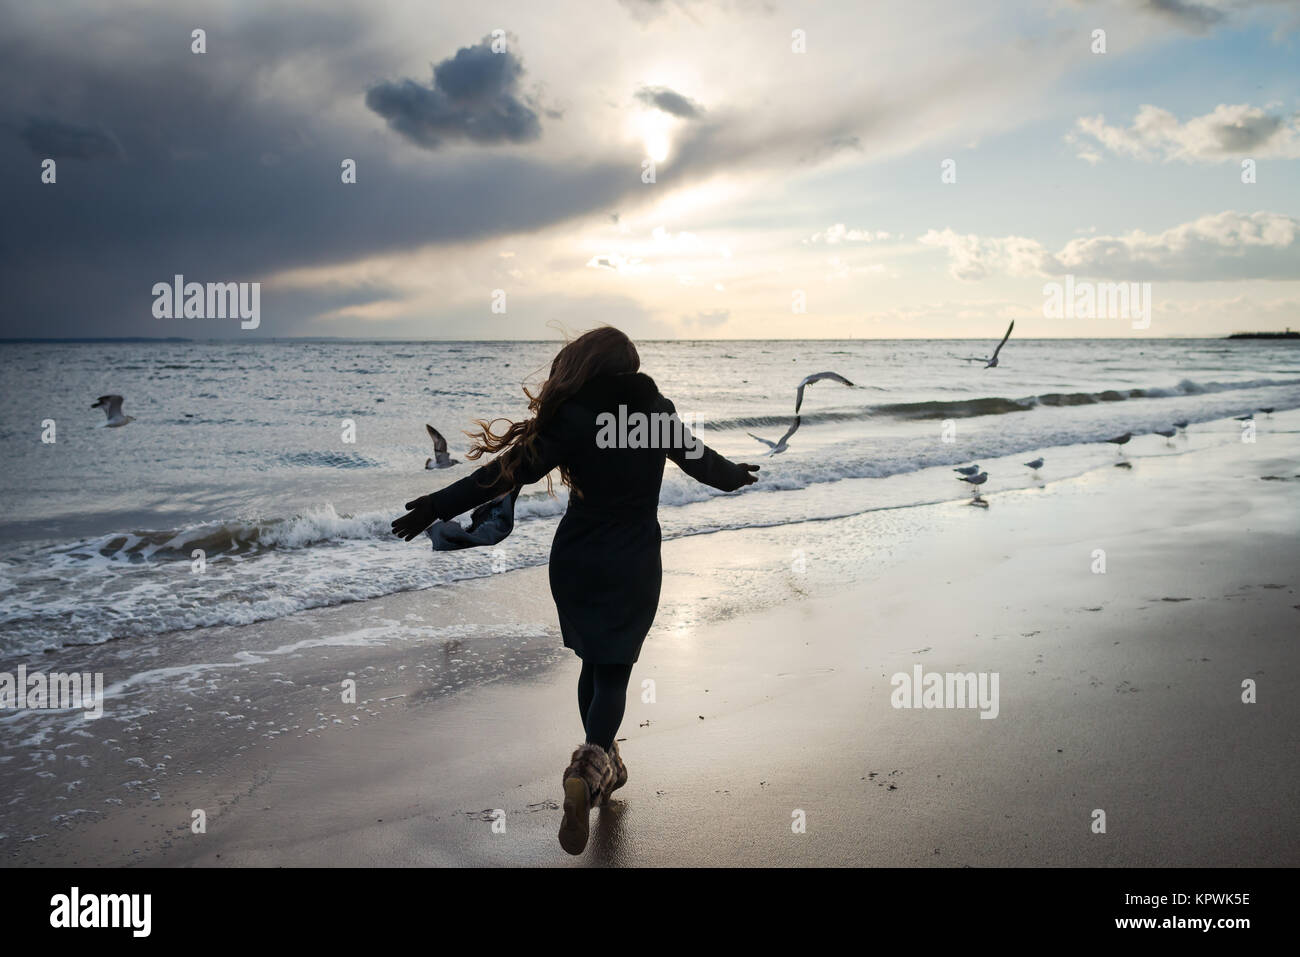 Birds Girl Woman Flying Stock Photos & Birds Girl Woman ...